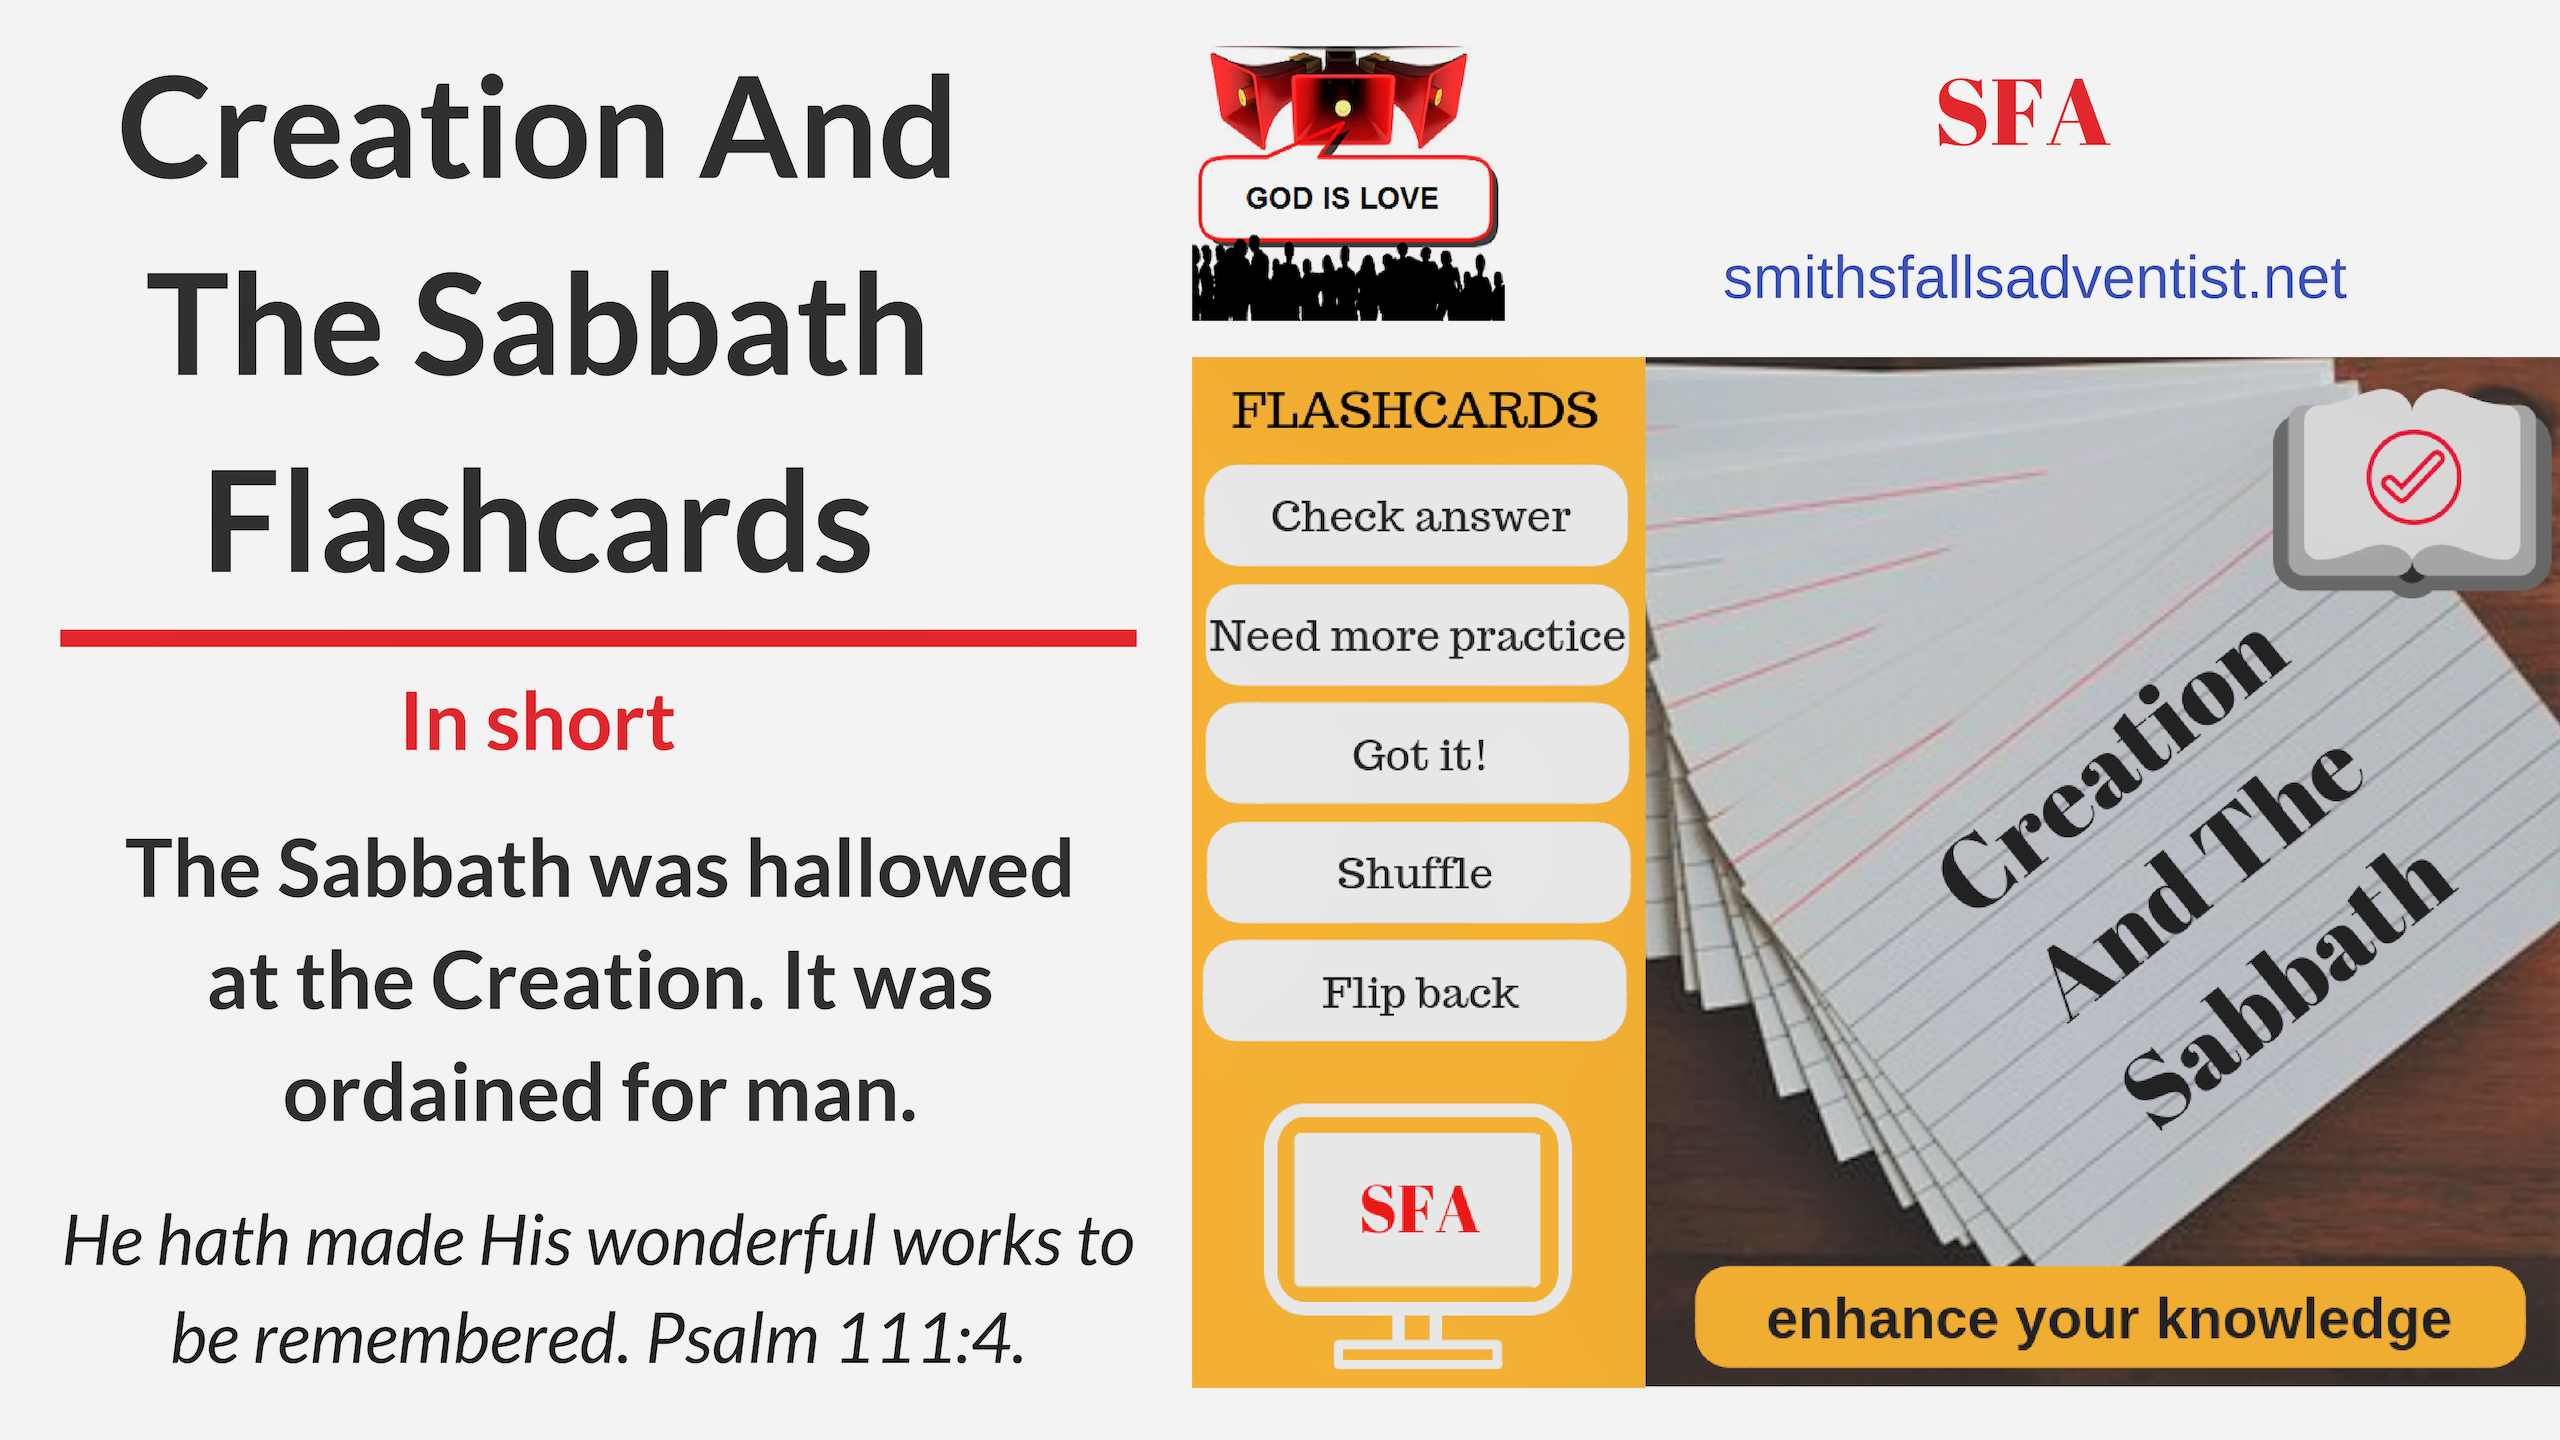 Title-Creation-And-The-Sabbath-text-logo-buttons